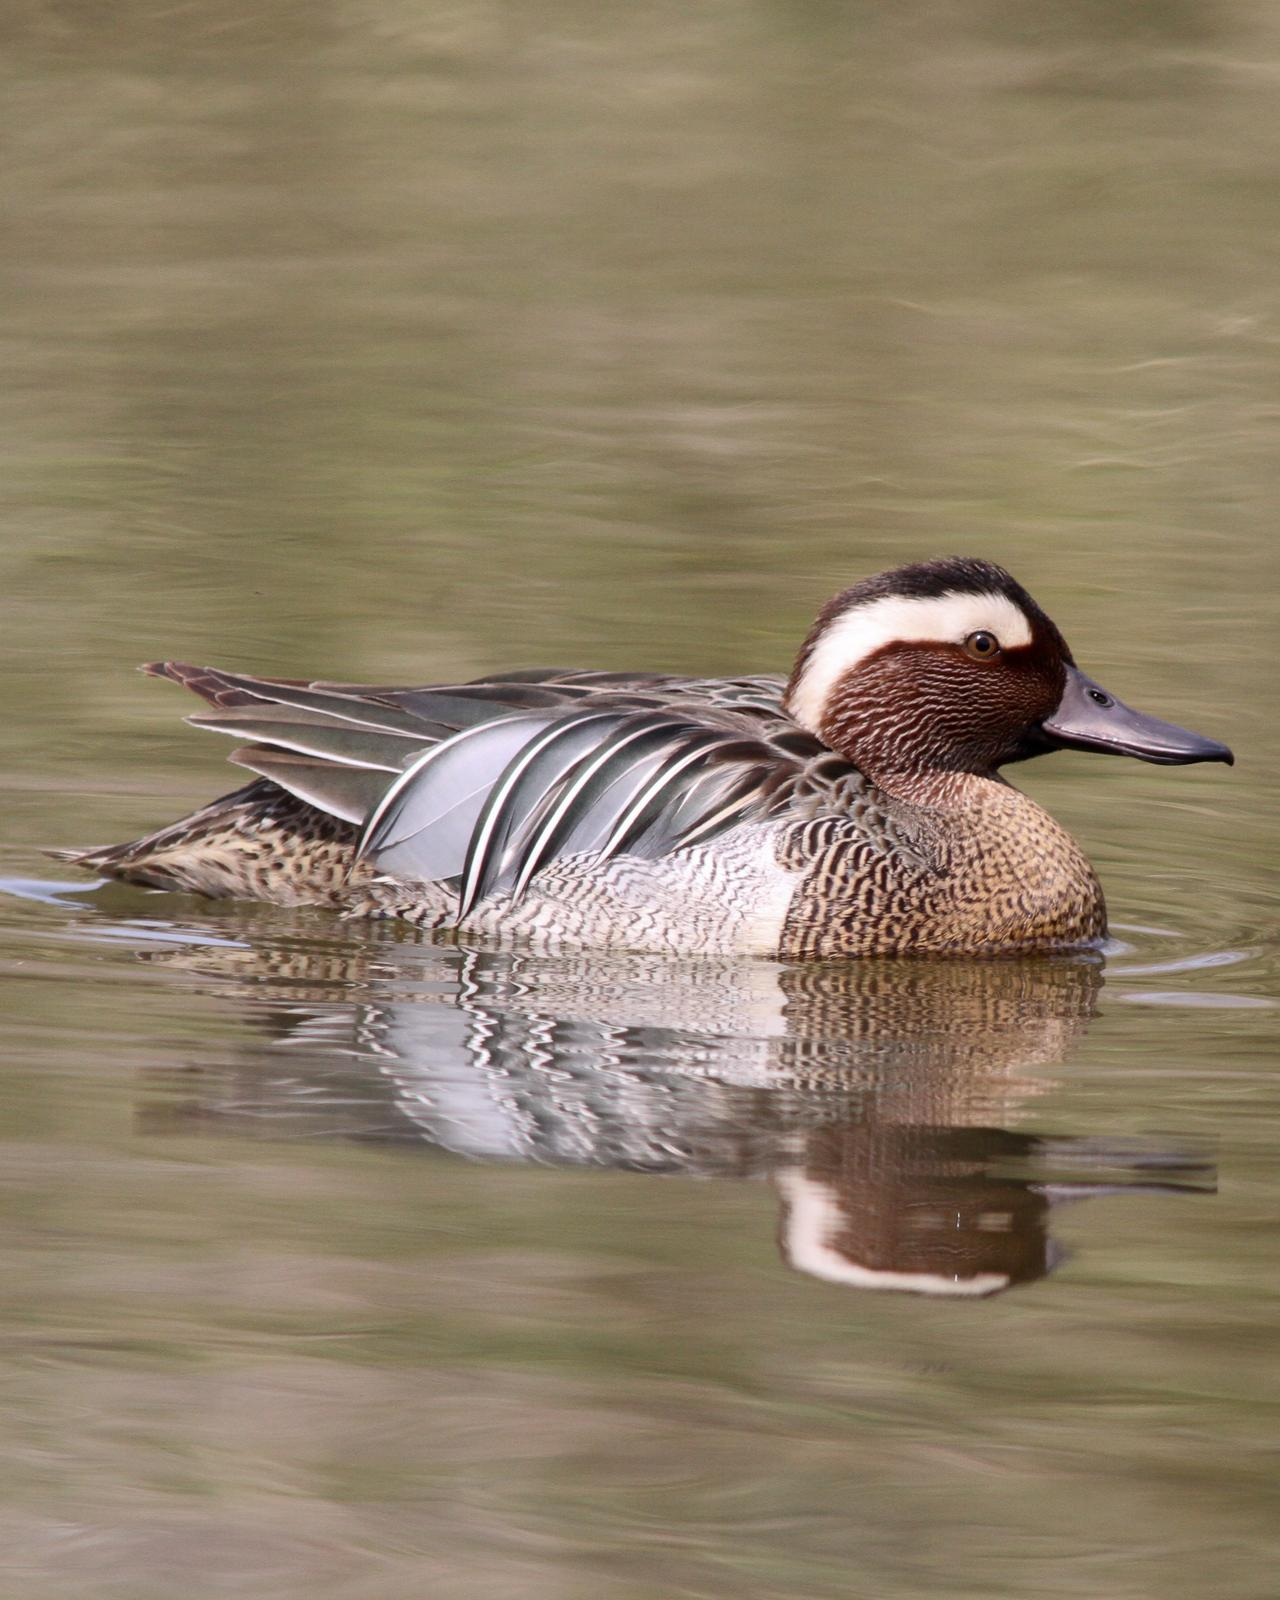 Garganey Photo by Kasia  Ganderska Someya